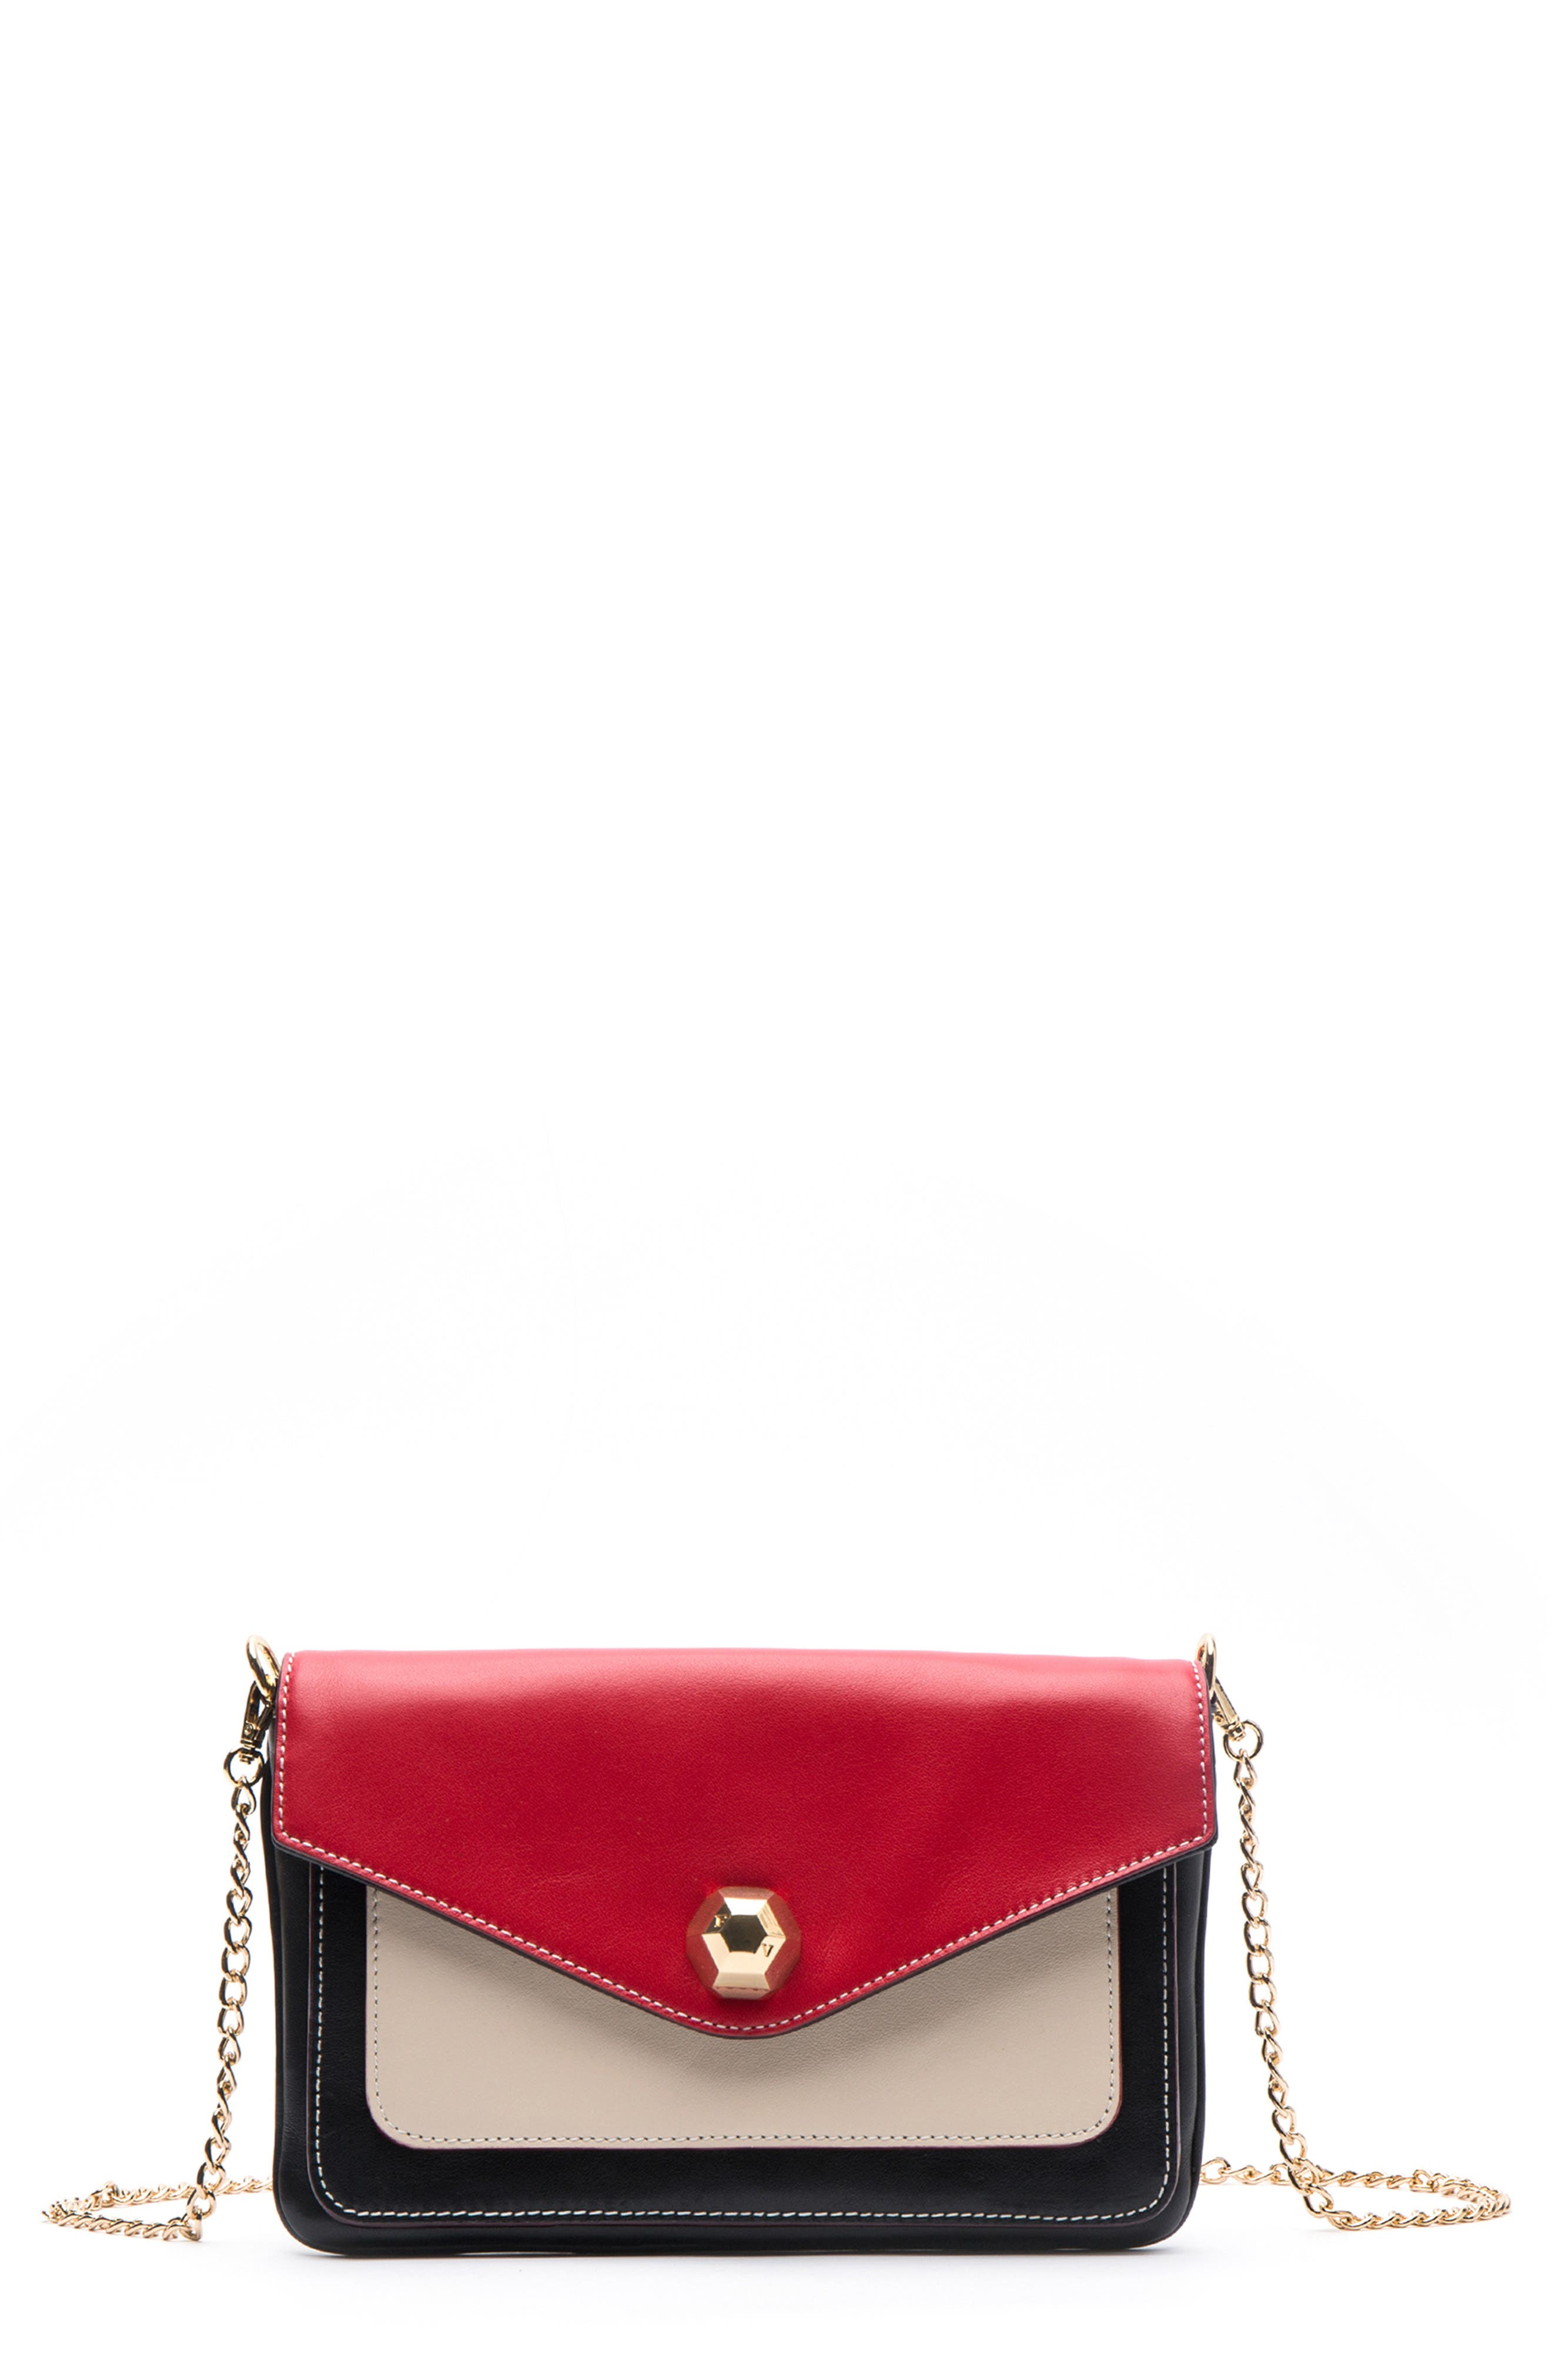 FRANCES VALENTINE Tess Colorblock Leather Clutch - Black in Black/ Oyster/ Red